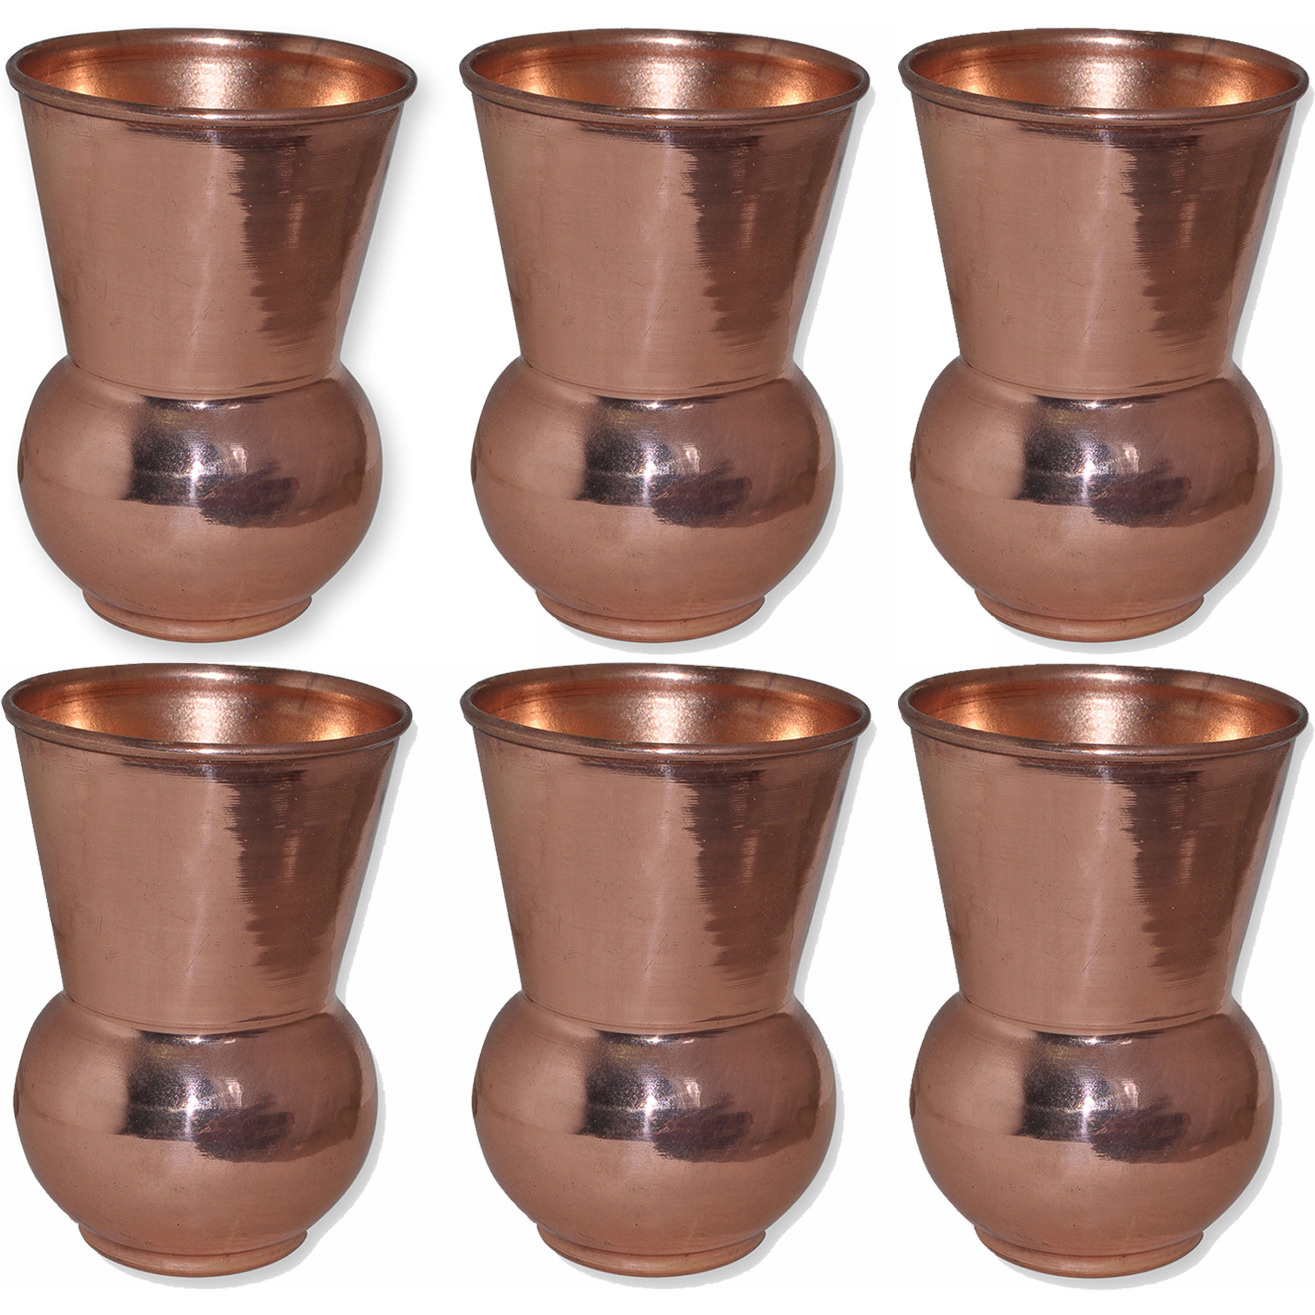 Set of 6 - Prisha India Craft B. Copper Muglai Matka Glass Drinkware Tumbler Handmade Copper Cup - Traveller's Copper Mug